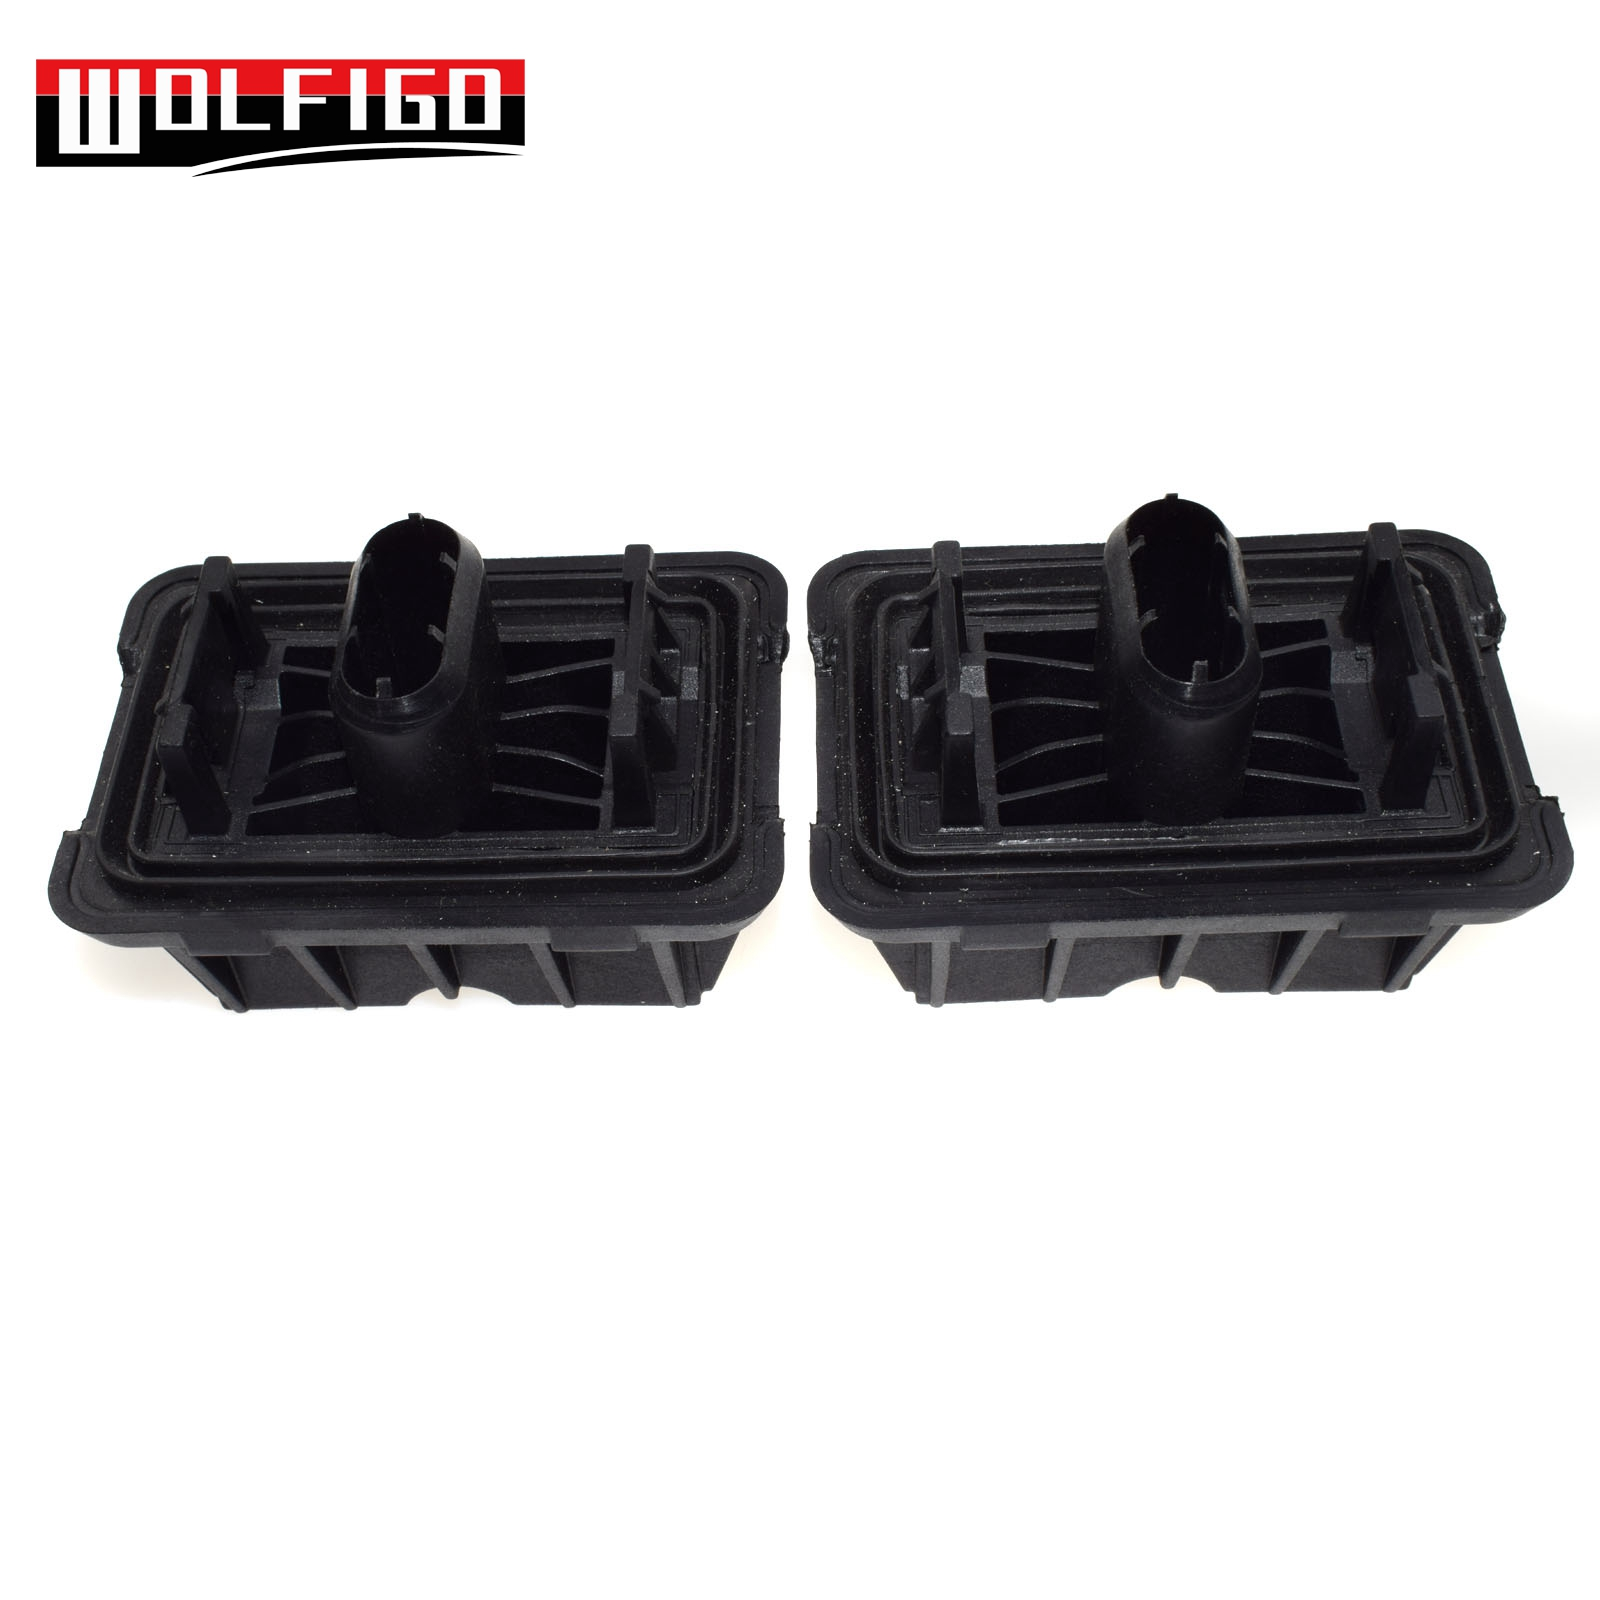 WOLFIGO Set 2PCS For BMW E82 E90 Jack Pads Under Car Support For Lifting Car 51717237195 New Chassis Components     - title=